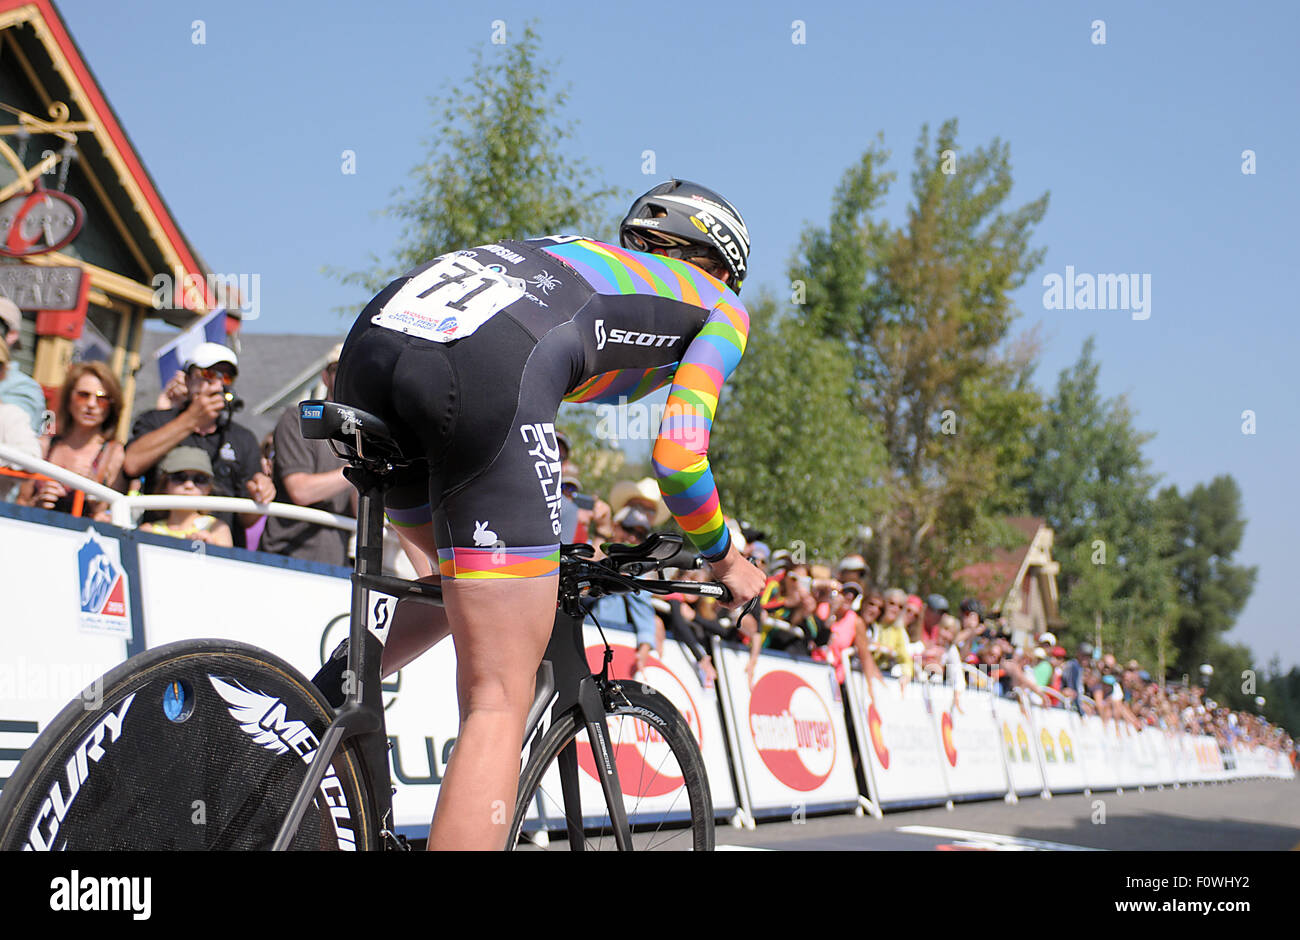 Breckenridge, Colorado, USA. 21st August, 2015. DNA Cycling rider, Lauren De Crescenzo, leaves the time trial start - Stock Image